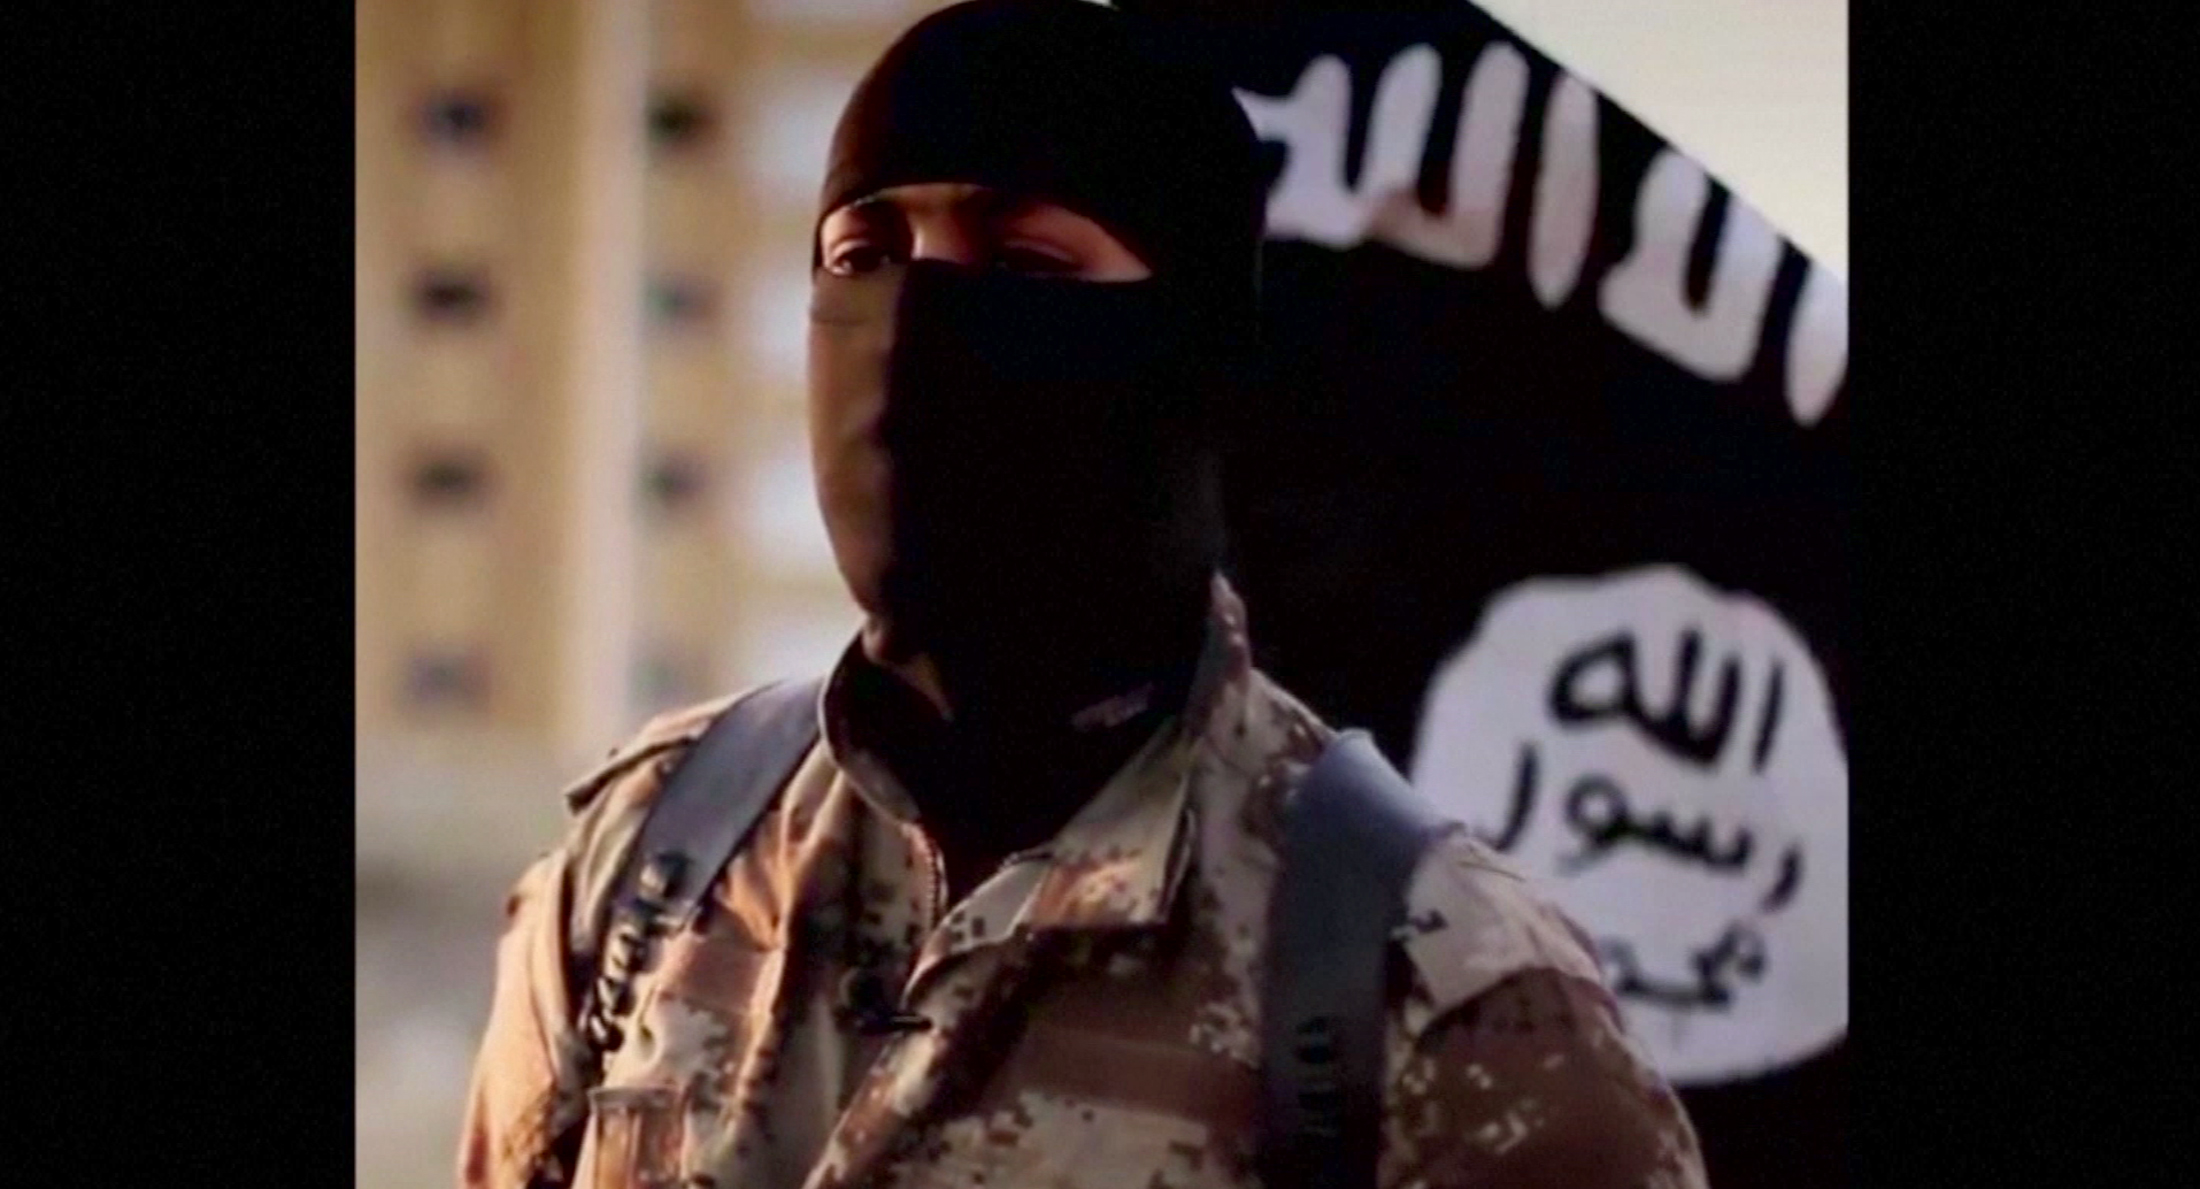 A masked man speaking in what is believed to be a North American accent in a video that Islamic State militants released in September 2014 is pictured in this still frame from video obtained by Reuters October 7, 2014. The FBI said October 7, 2014 it was seeking information on the man's identity, and issued an appeal for help in identifying individuals heading overseas to join militants in combat.  REUTERS/FBI/Handout via Reuters  (UNITED STATES - Tags: POLITICS RELIGION CONFLICT) THIS IMAGE HAS BEEN SUPPLIED BY A THIRD PARTY. IT IS DISTRIBUTED, EXACTLY AS RECEIVED BY REUTERS, AS A SERVICE TO CLIENTS. FOR EDITORIAL USE ONLY. NOT FOR SALE FOR MARKETING OR ADVERTISING CAMPAIGNS - RTR49BED